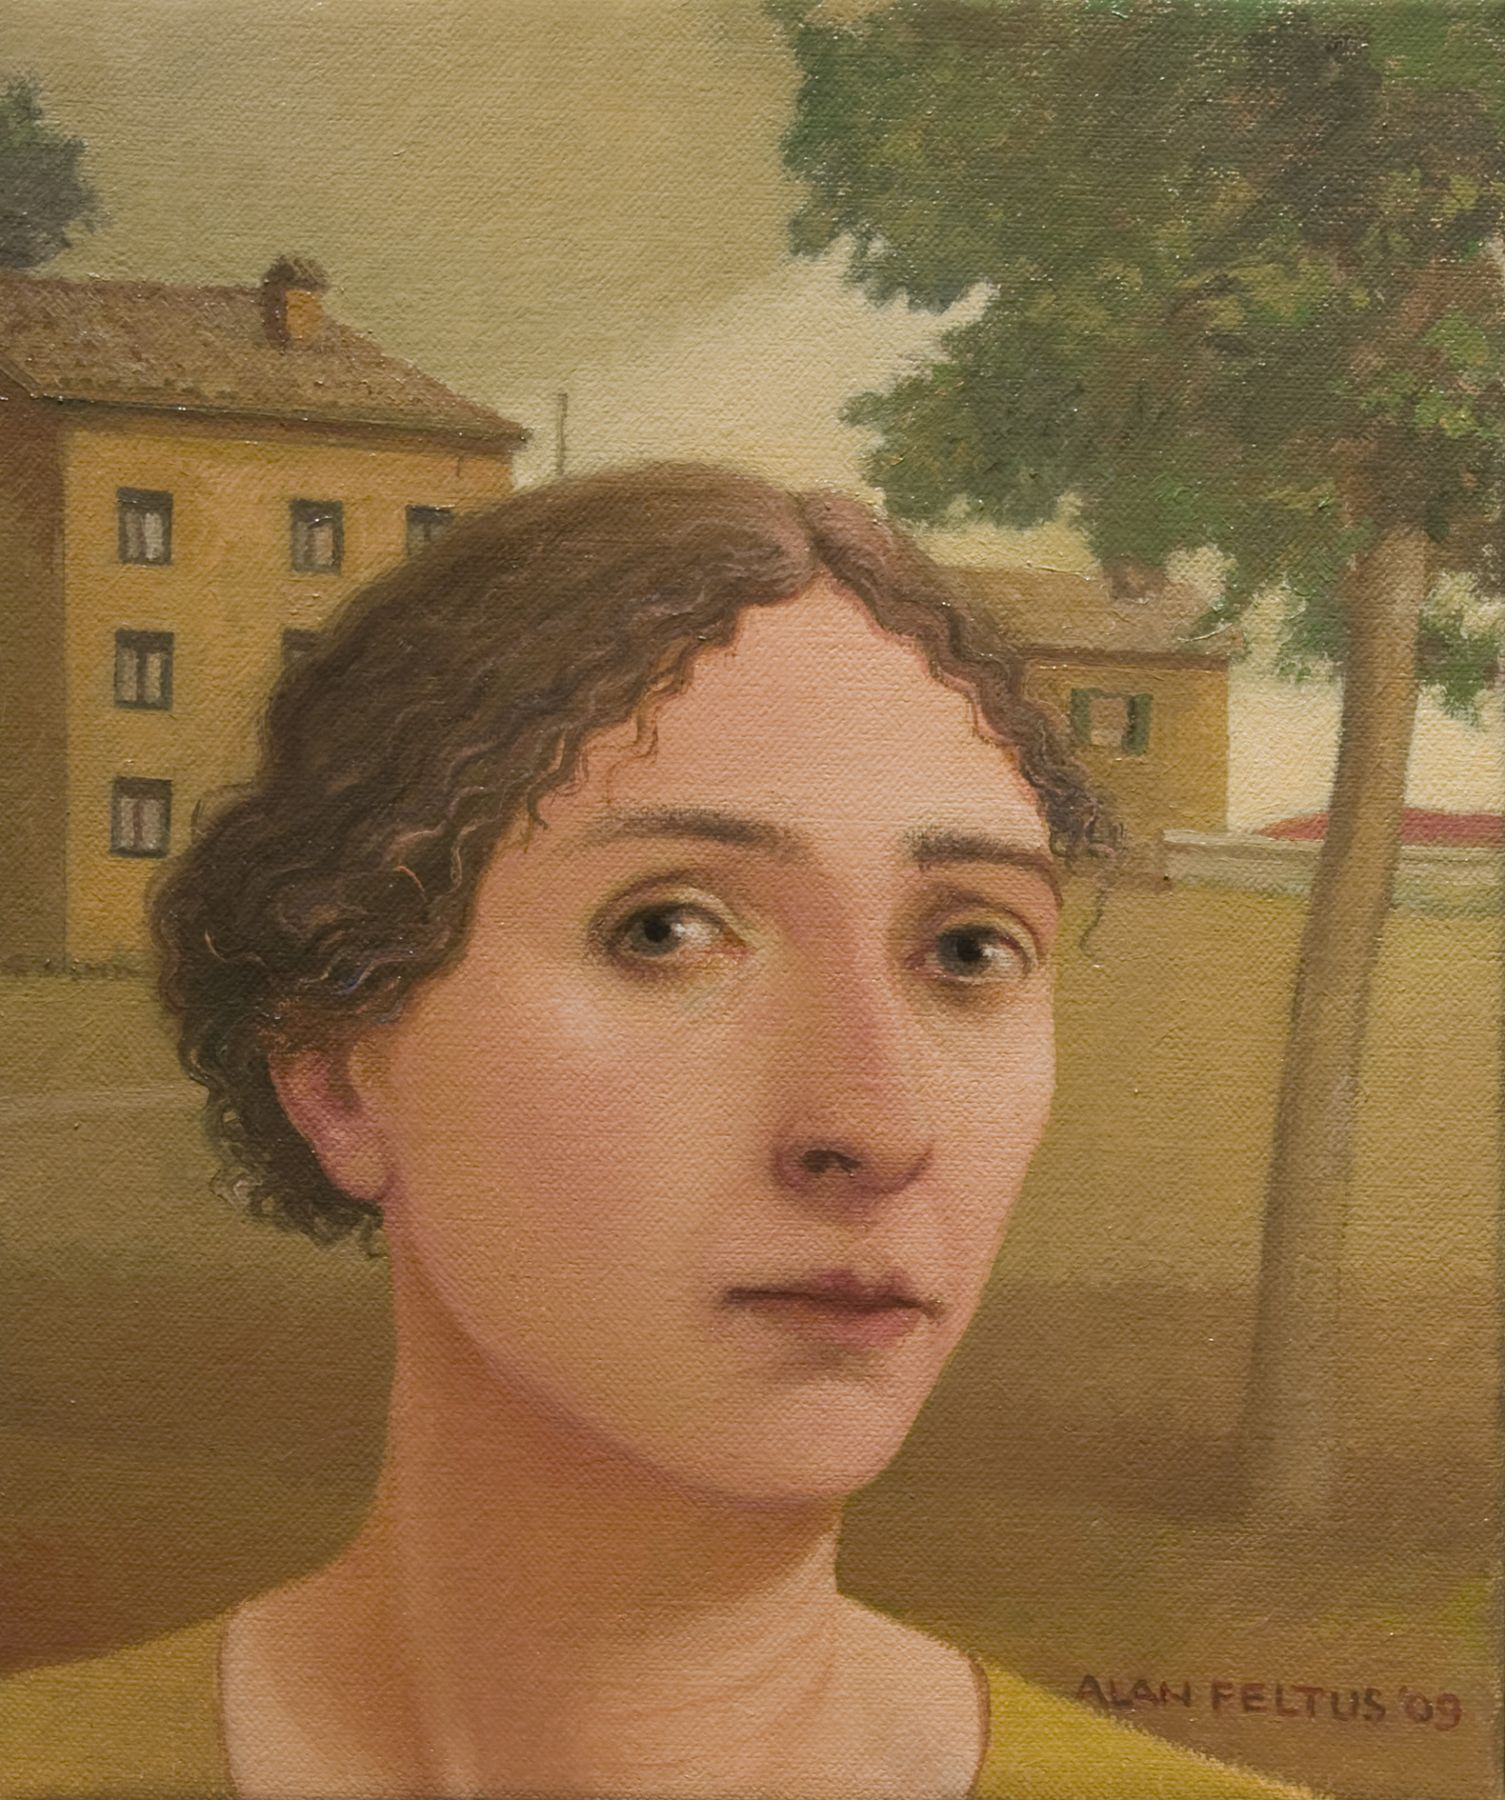 alan feltus, Teresa, 2009, oil on canvas, 12 x 10 inches